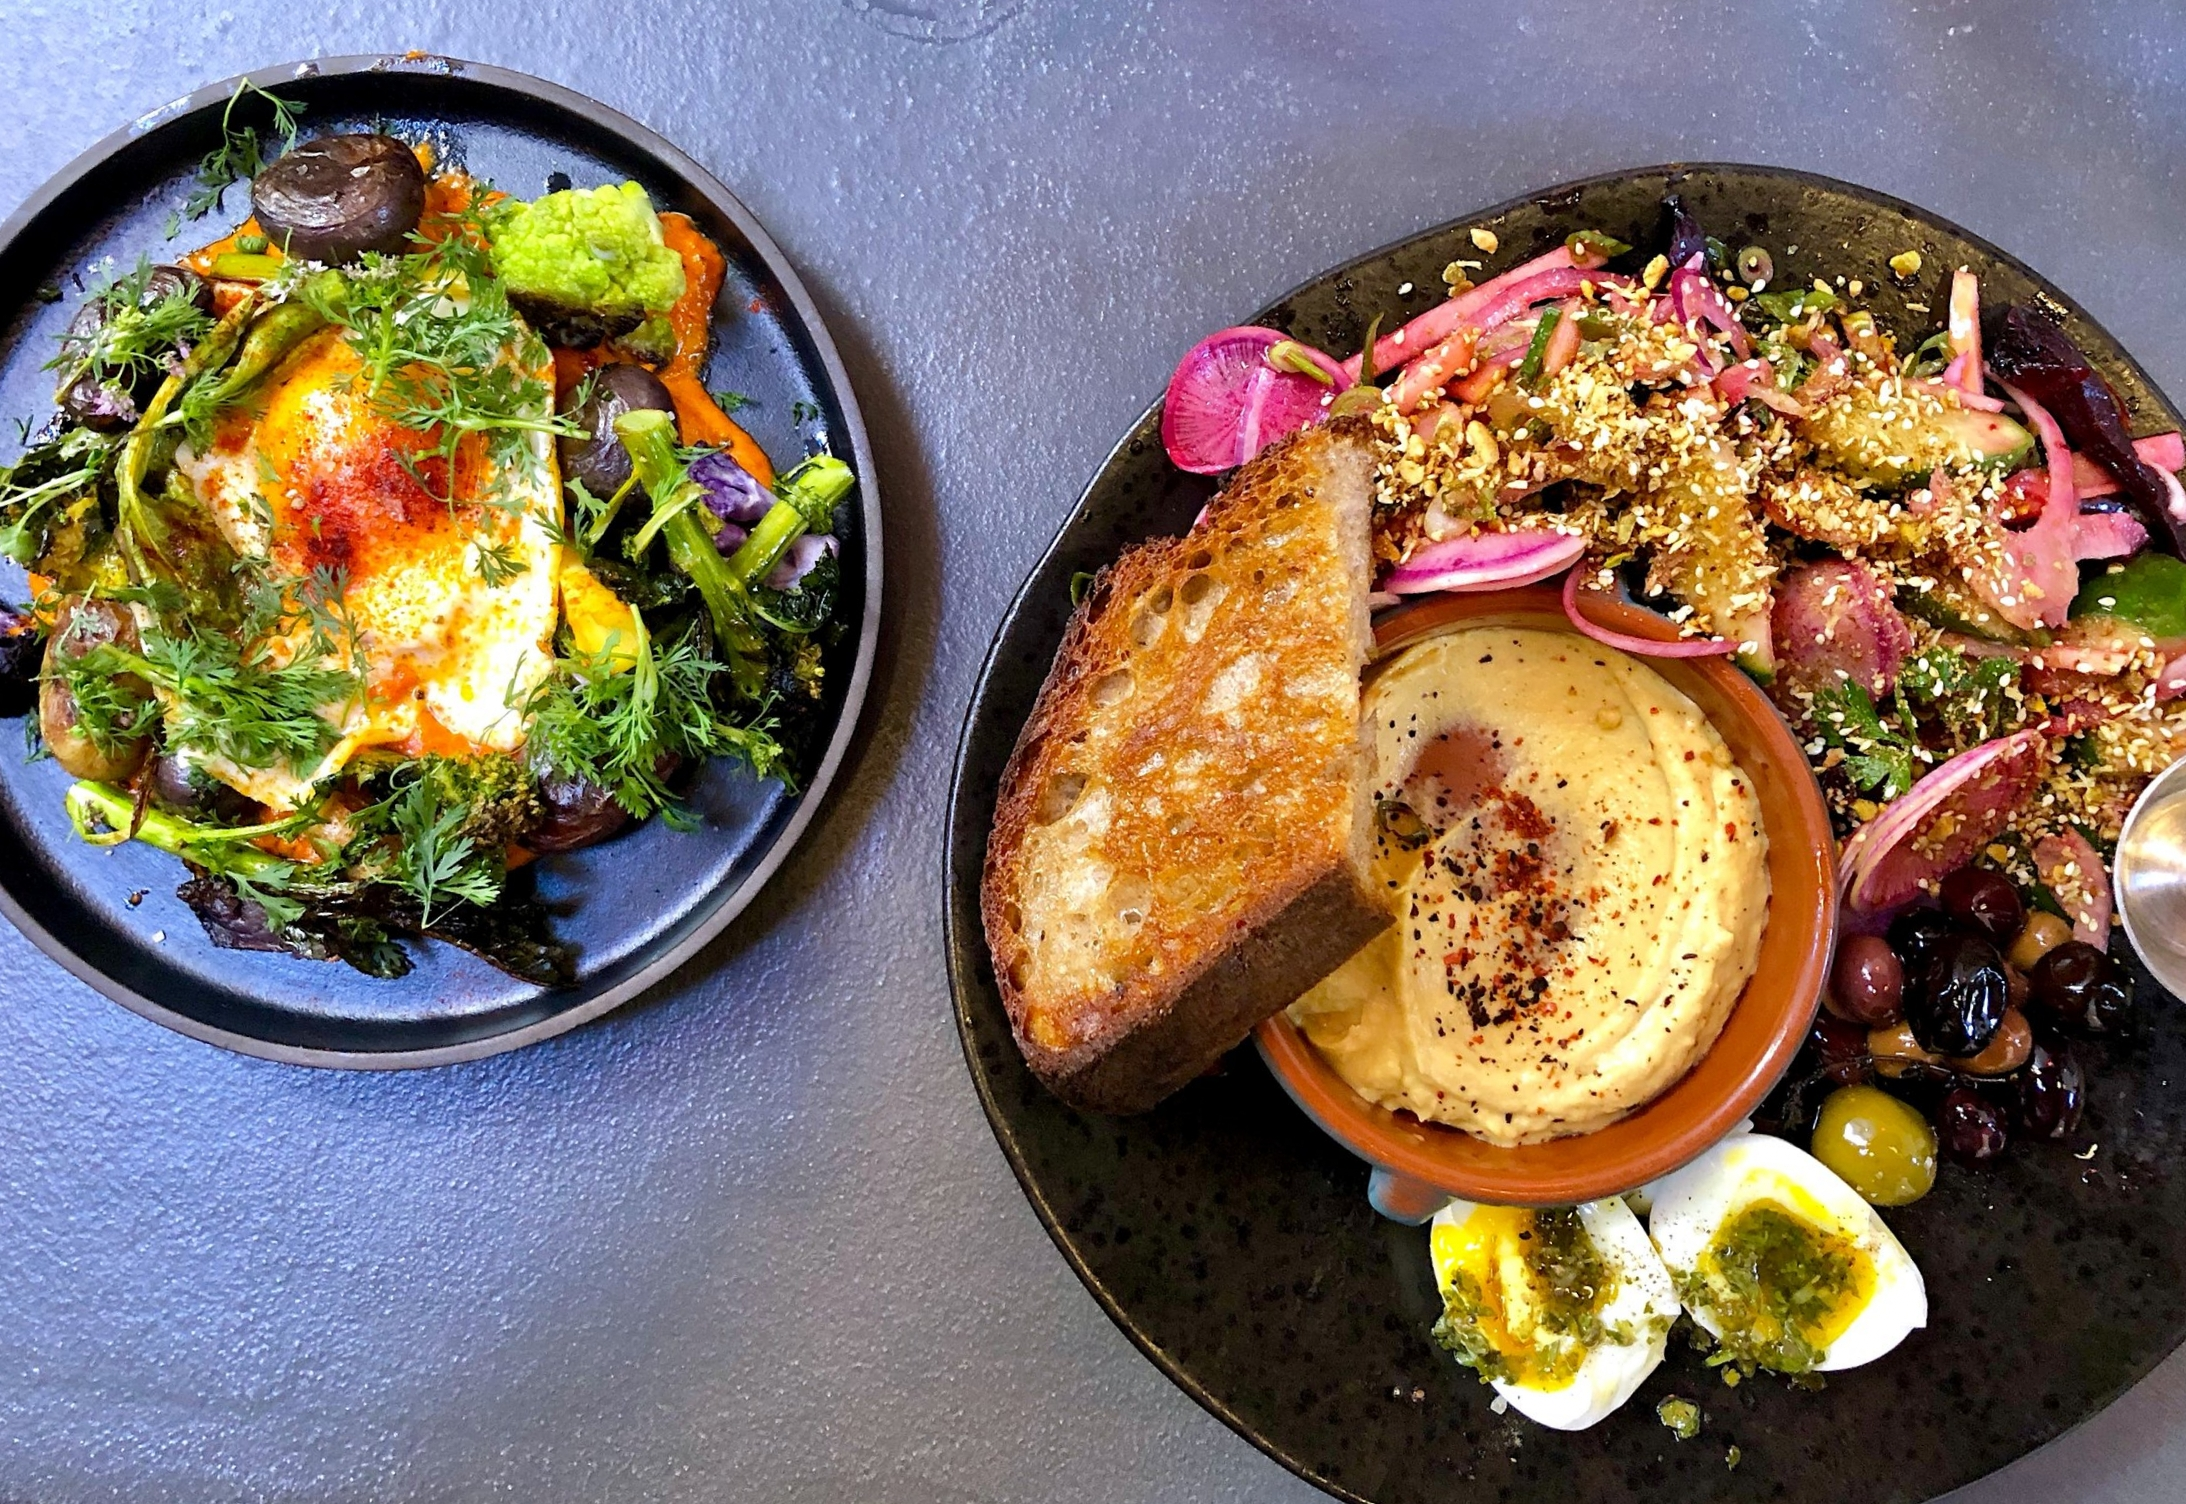 our favorite romesco // seared winter vegetables, charred leeks, peewee potatoes, almonds, cilantro, farm fried egg  morning mezze // roasted squash hummus, roasted beet-apple salad with dukkah, 6-minute egg with salsa verde, marinated olives, Bub & Grandma's bread